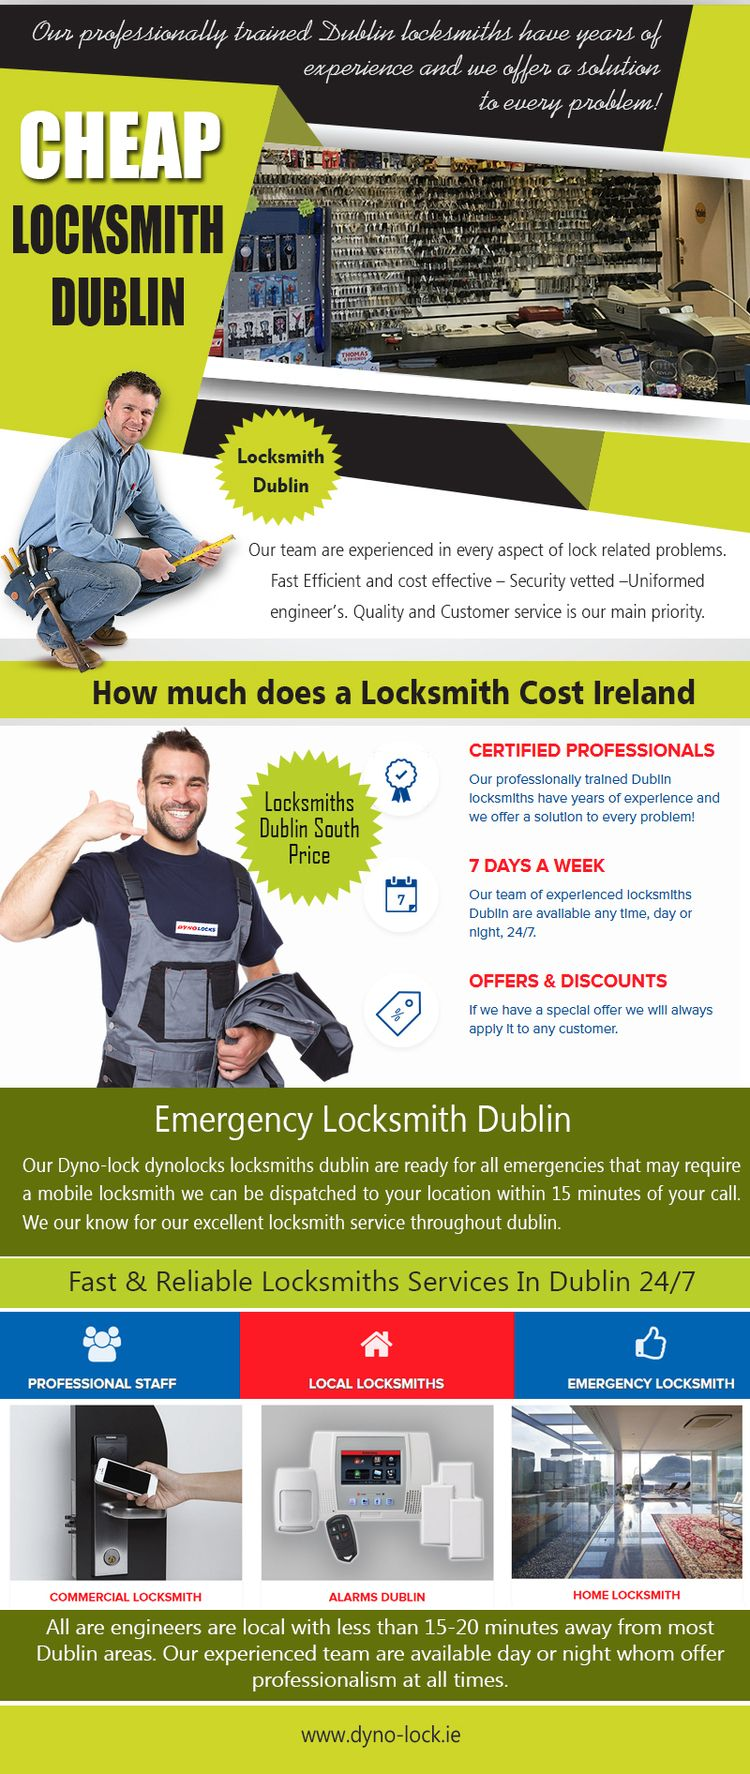 Cheap Locksmith Dublin locksmit - keycuttingdublin | ello